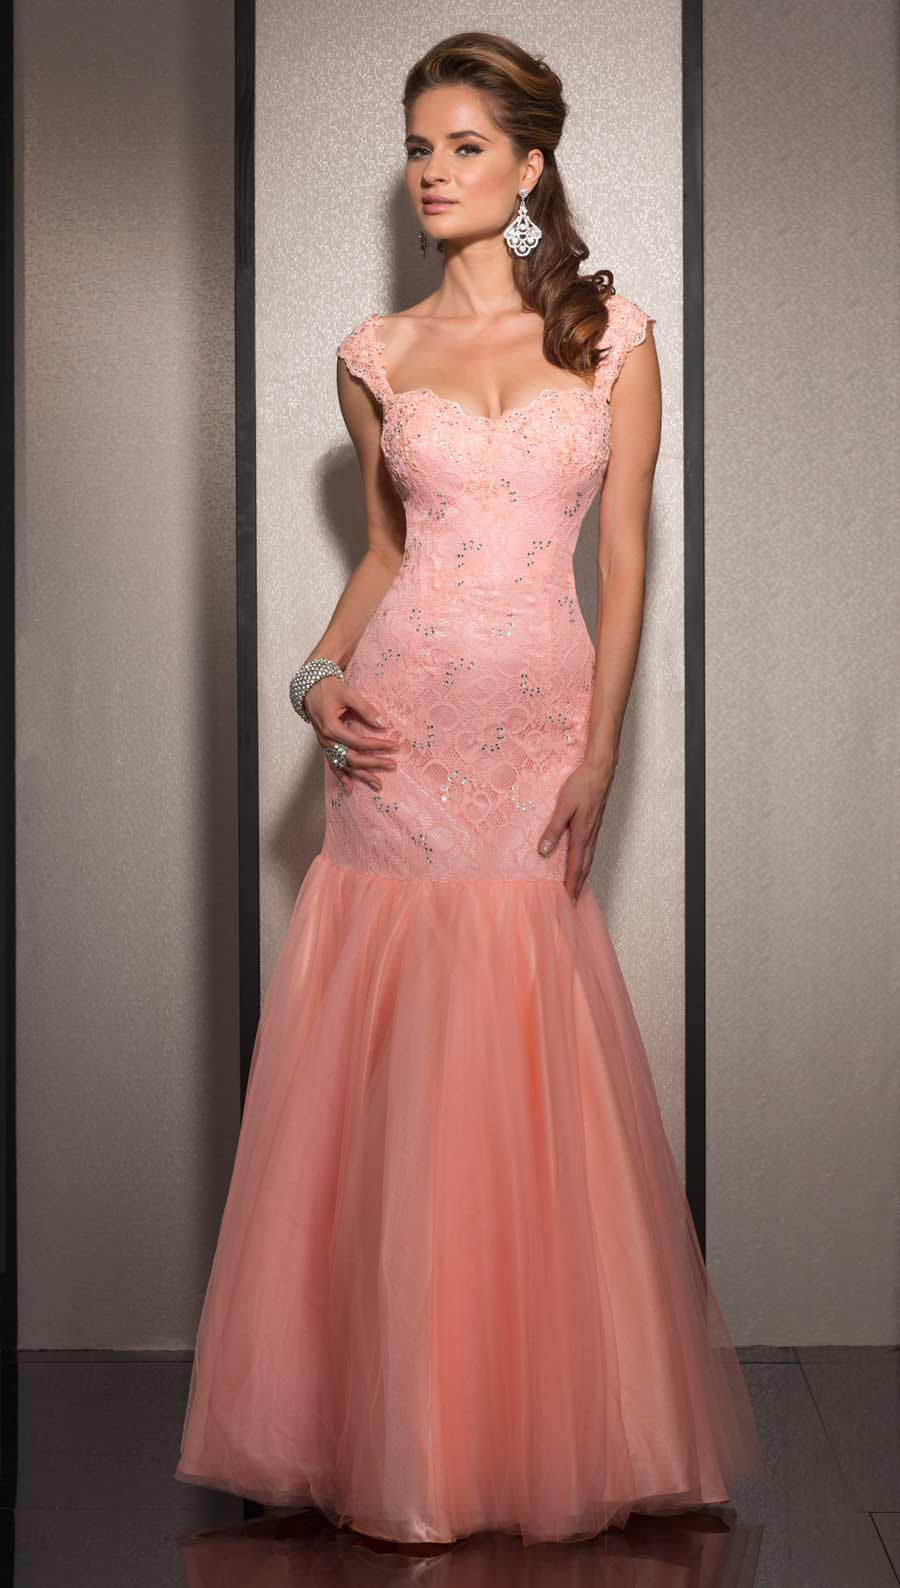 Clarisse Mermaid Prom Dress 2580 | Promgirl.net